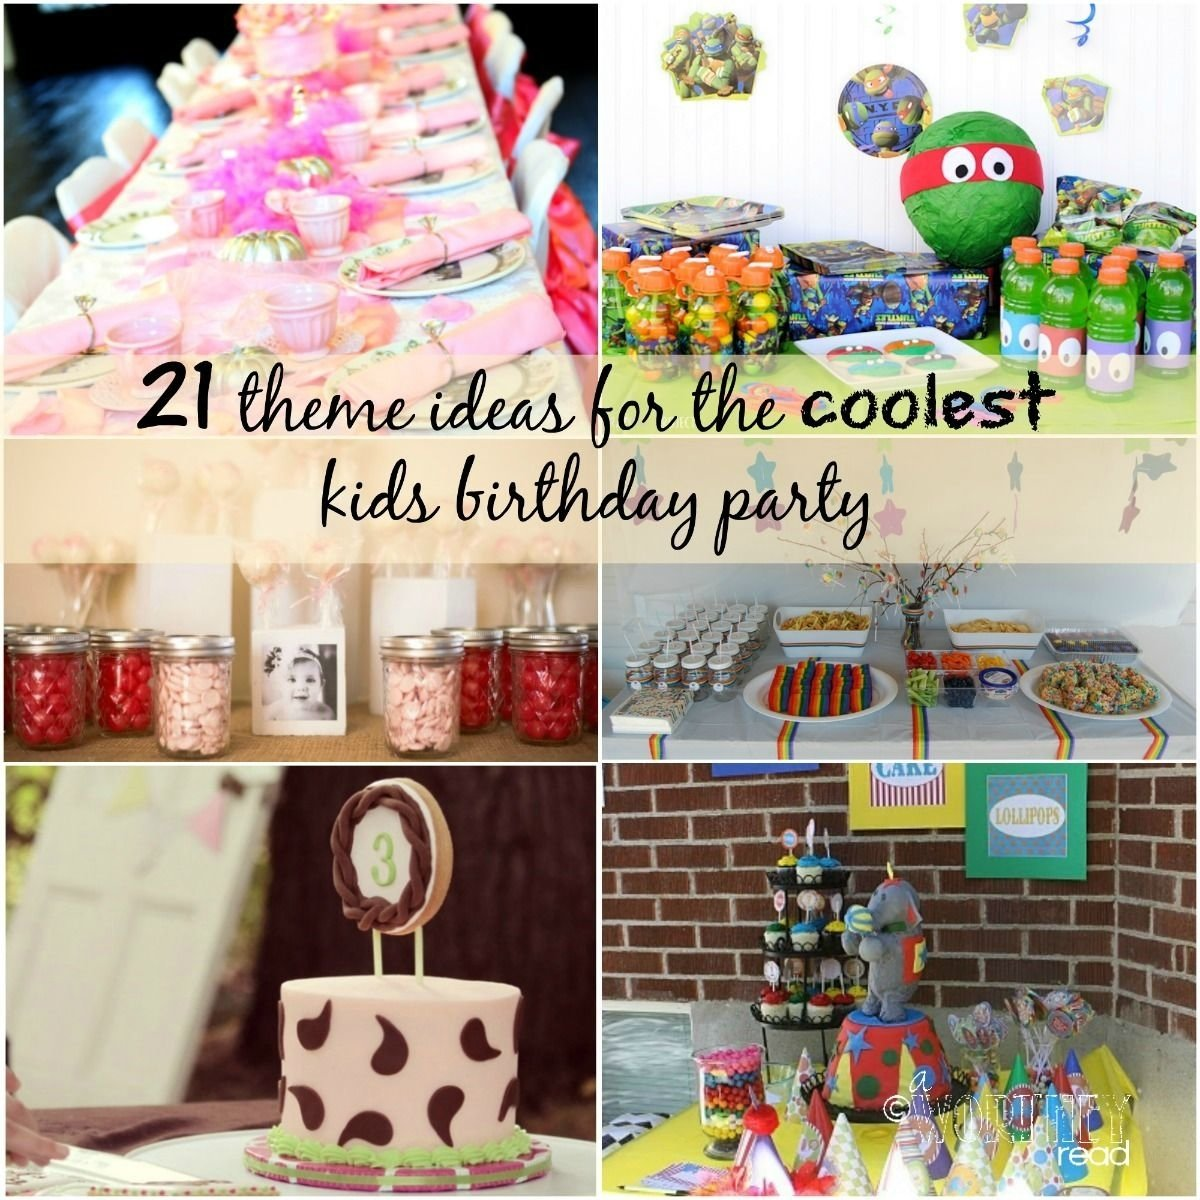 10 Lovable Indoor Birthday Party Ideas For Toddlers 21 theme ideas for the coolest kids birthday party theme ideas and 1 2020